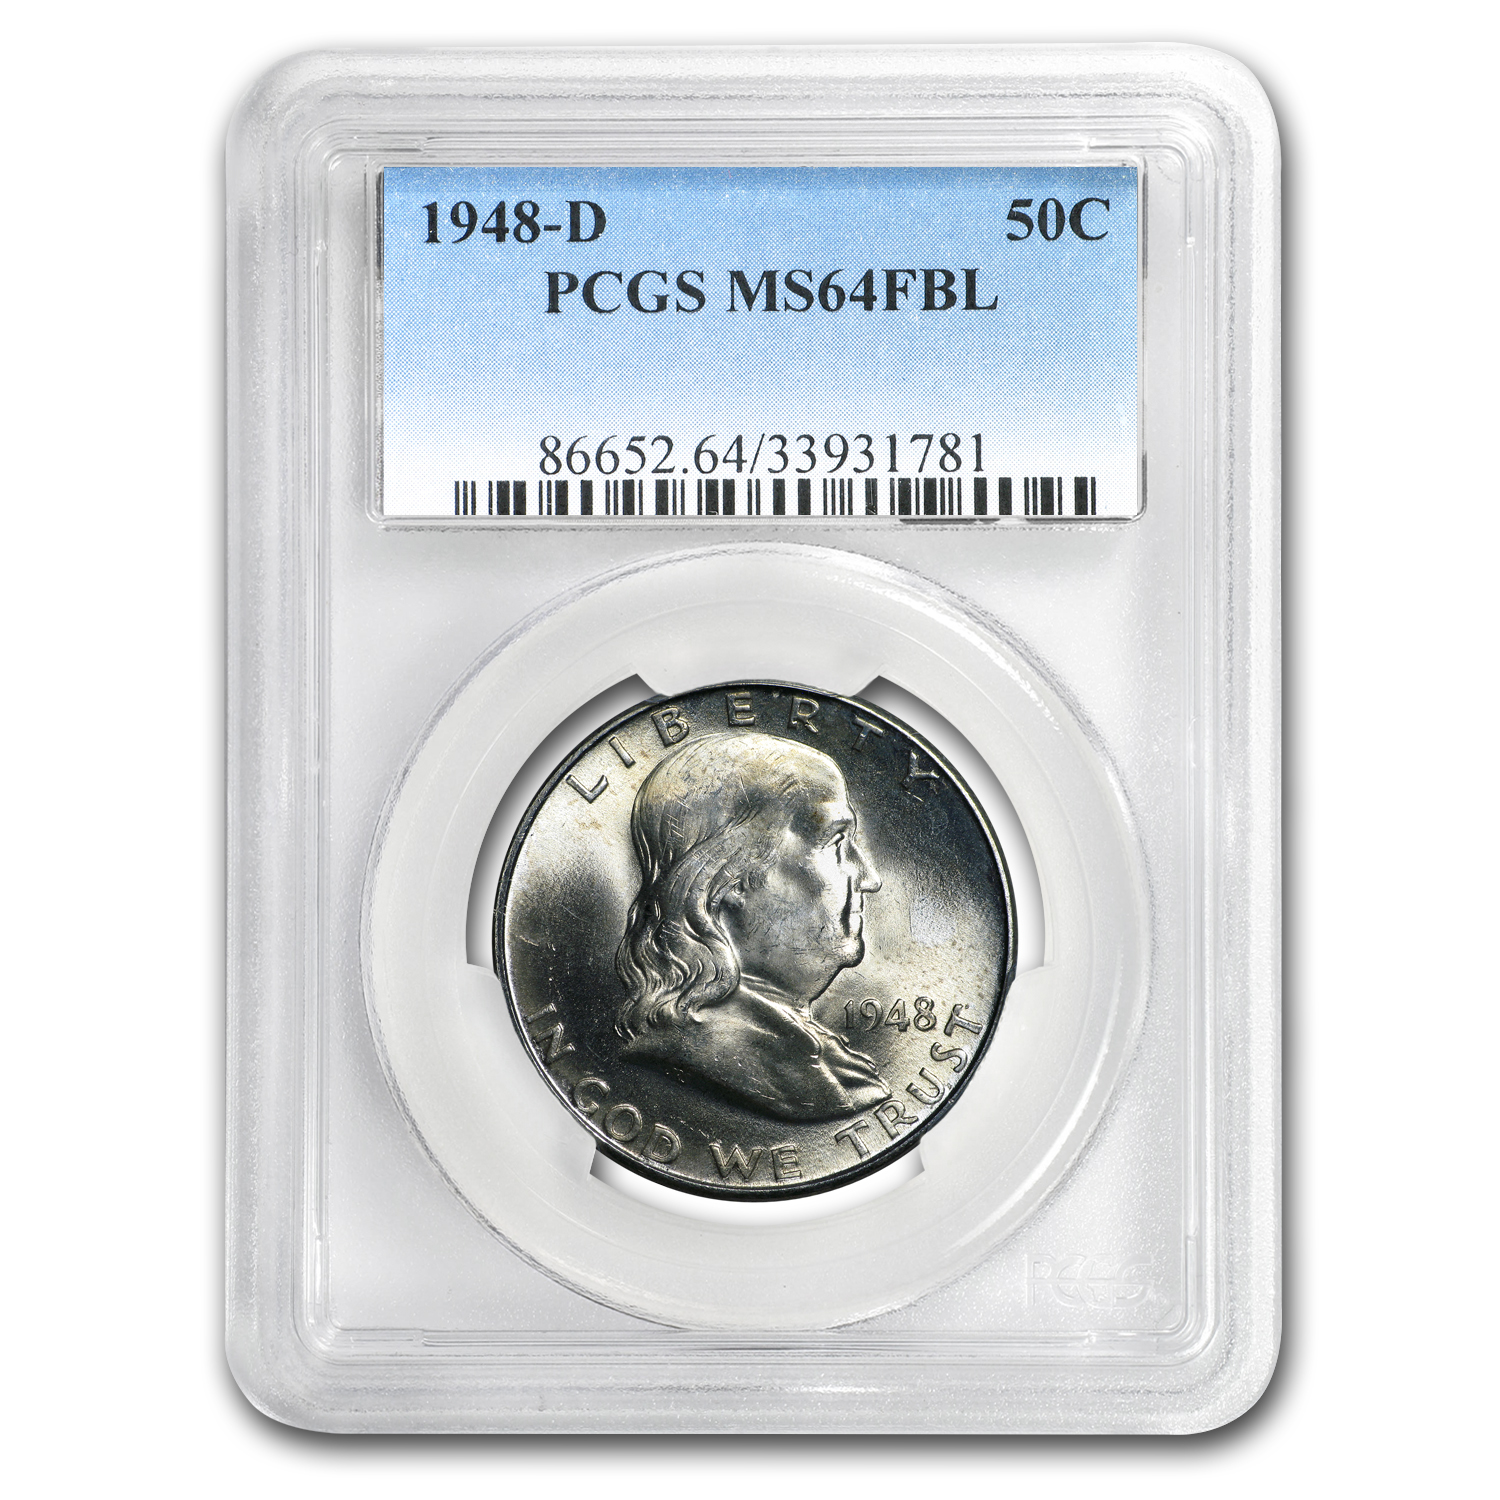 1948-D Franklin Half Dollar MS-64 PCGS (FBL)